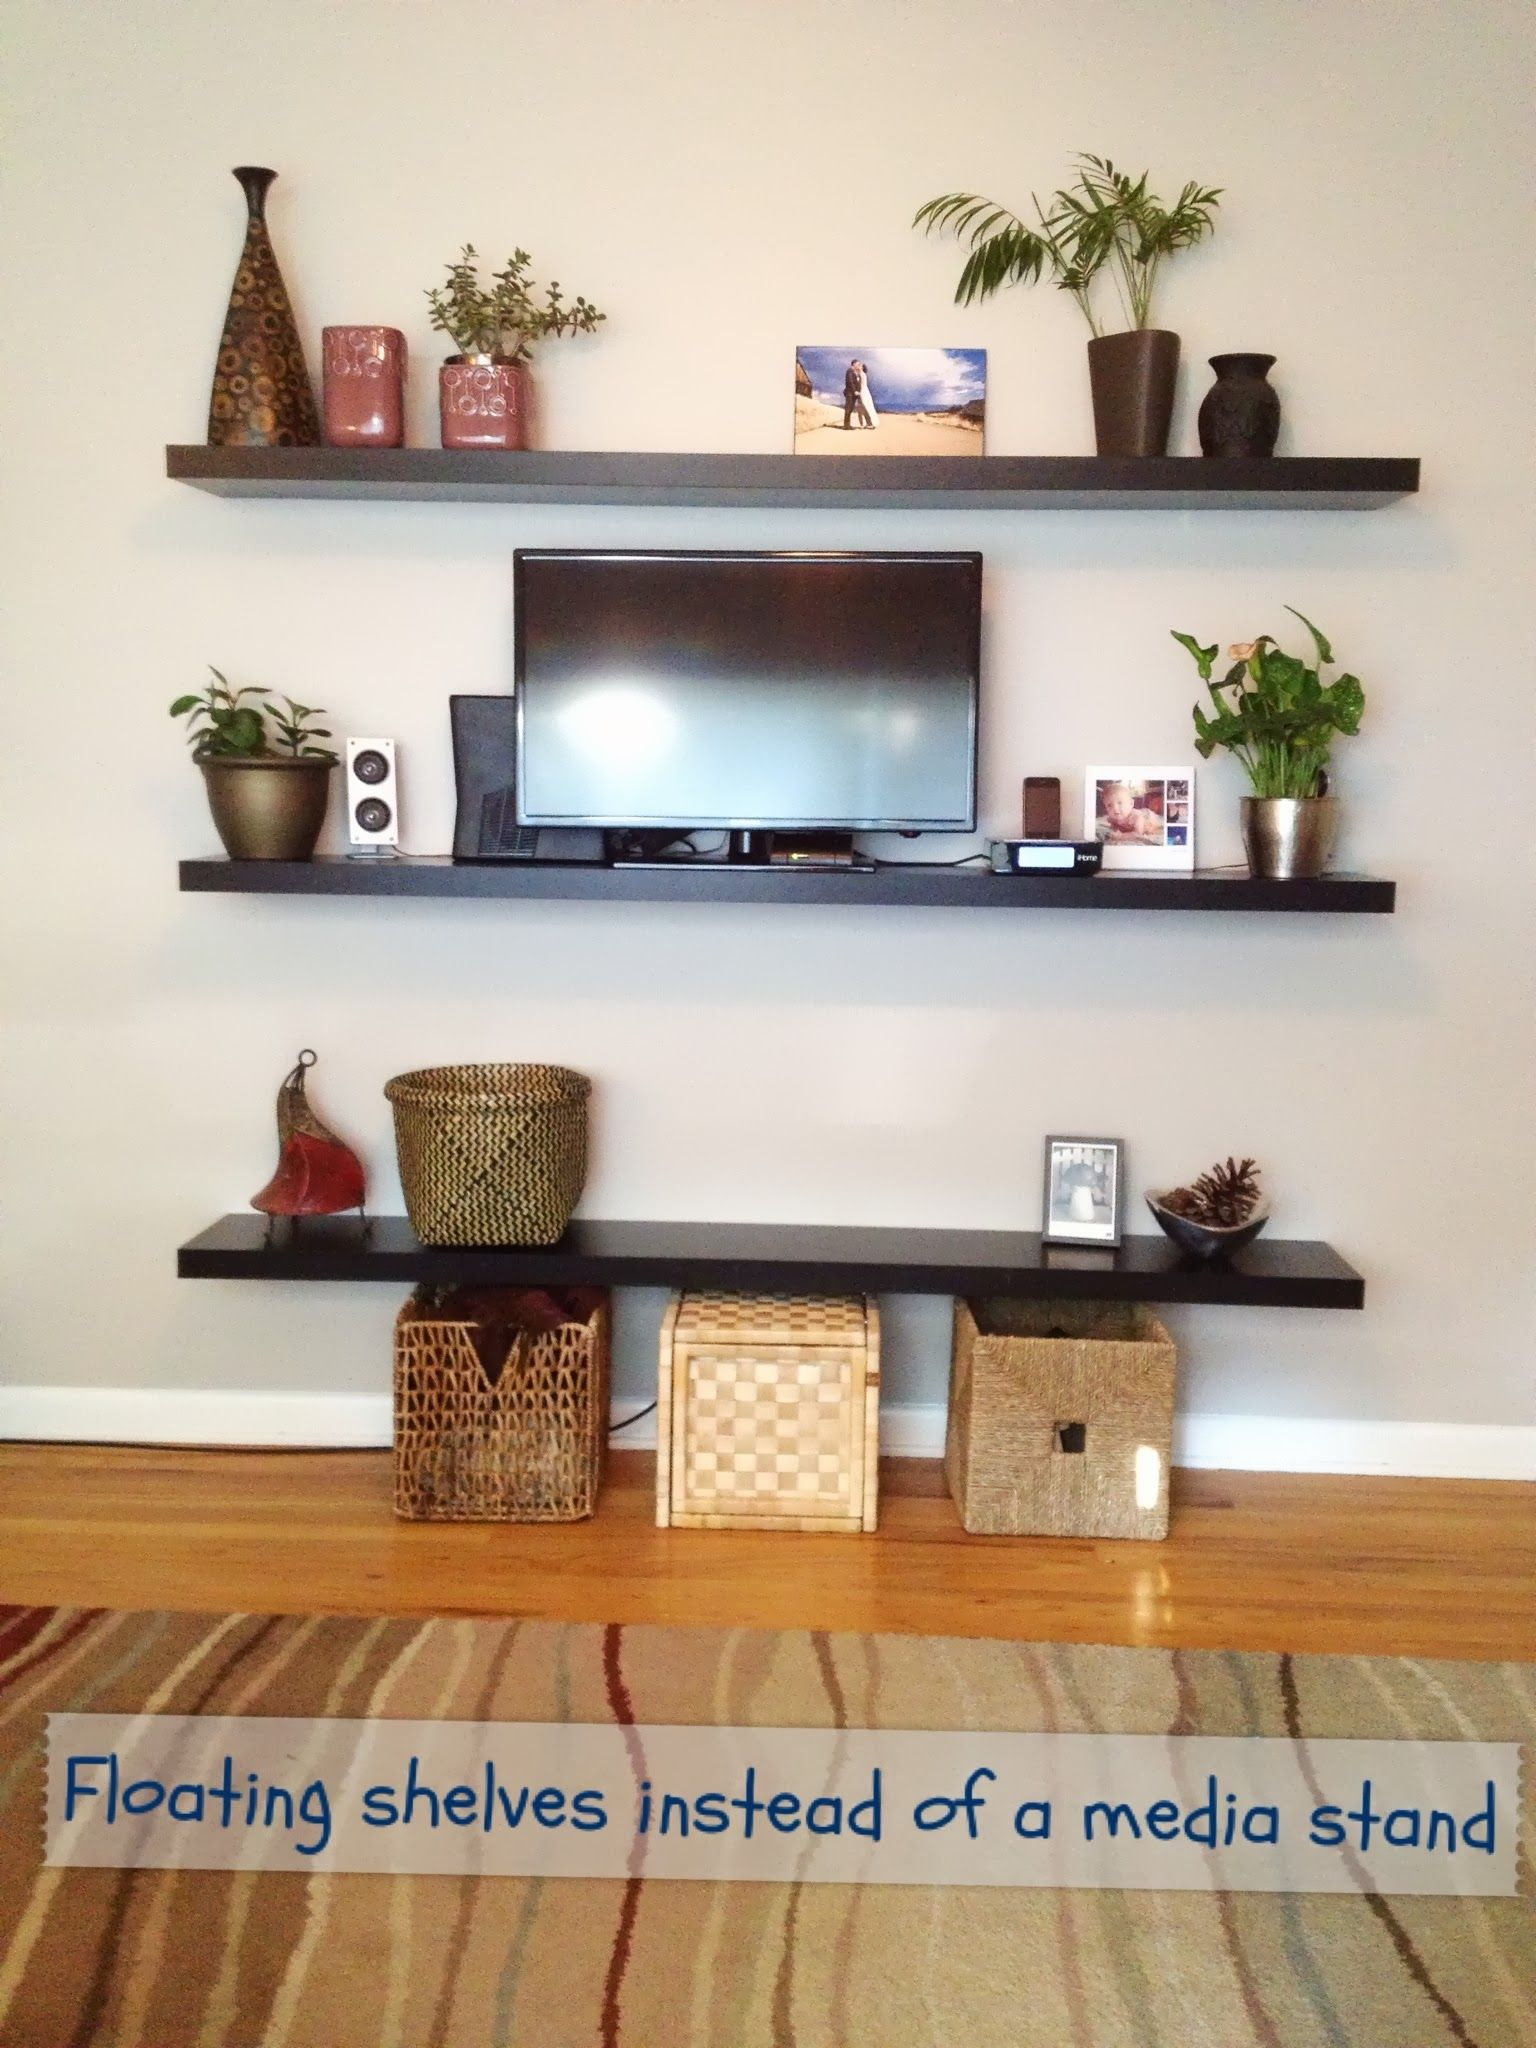 Wall Shelving For Living Room Mounte Tv With Shelf Under Google Search Tv Mounted In Bedroom